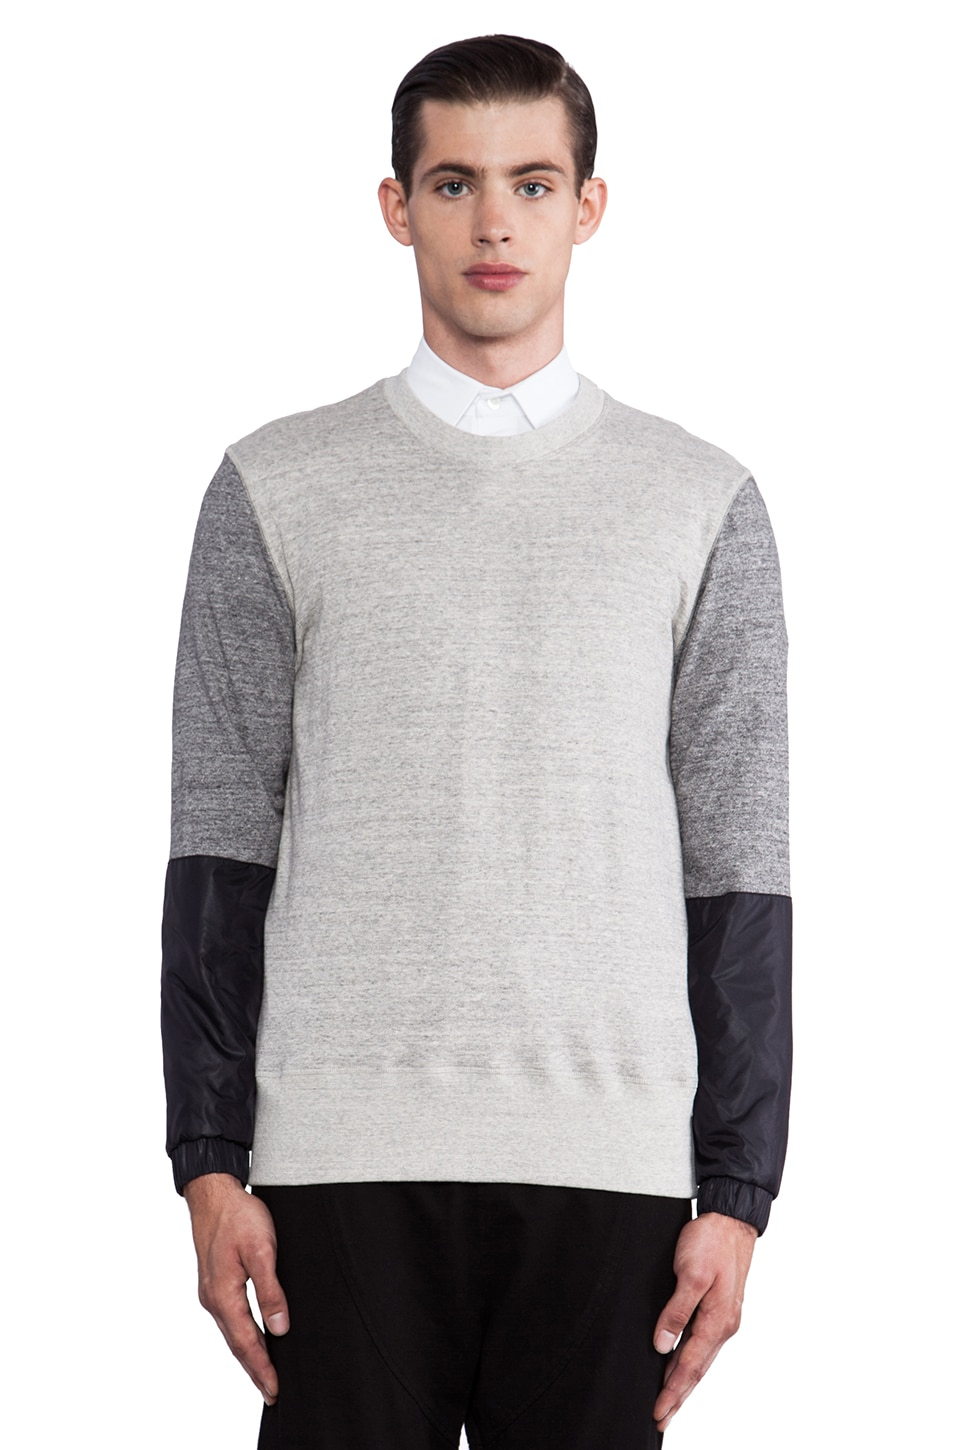 Public School Light Weight Sweatshirt in Heather Grey/ Black